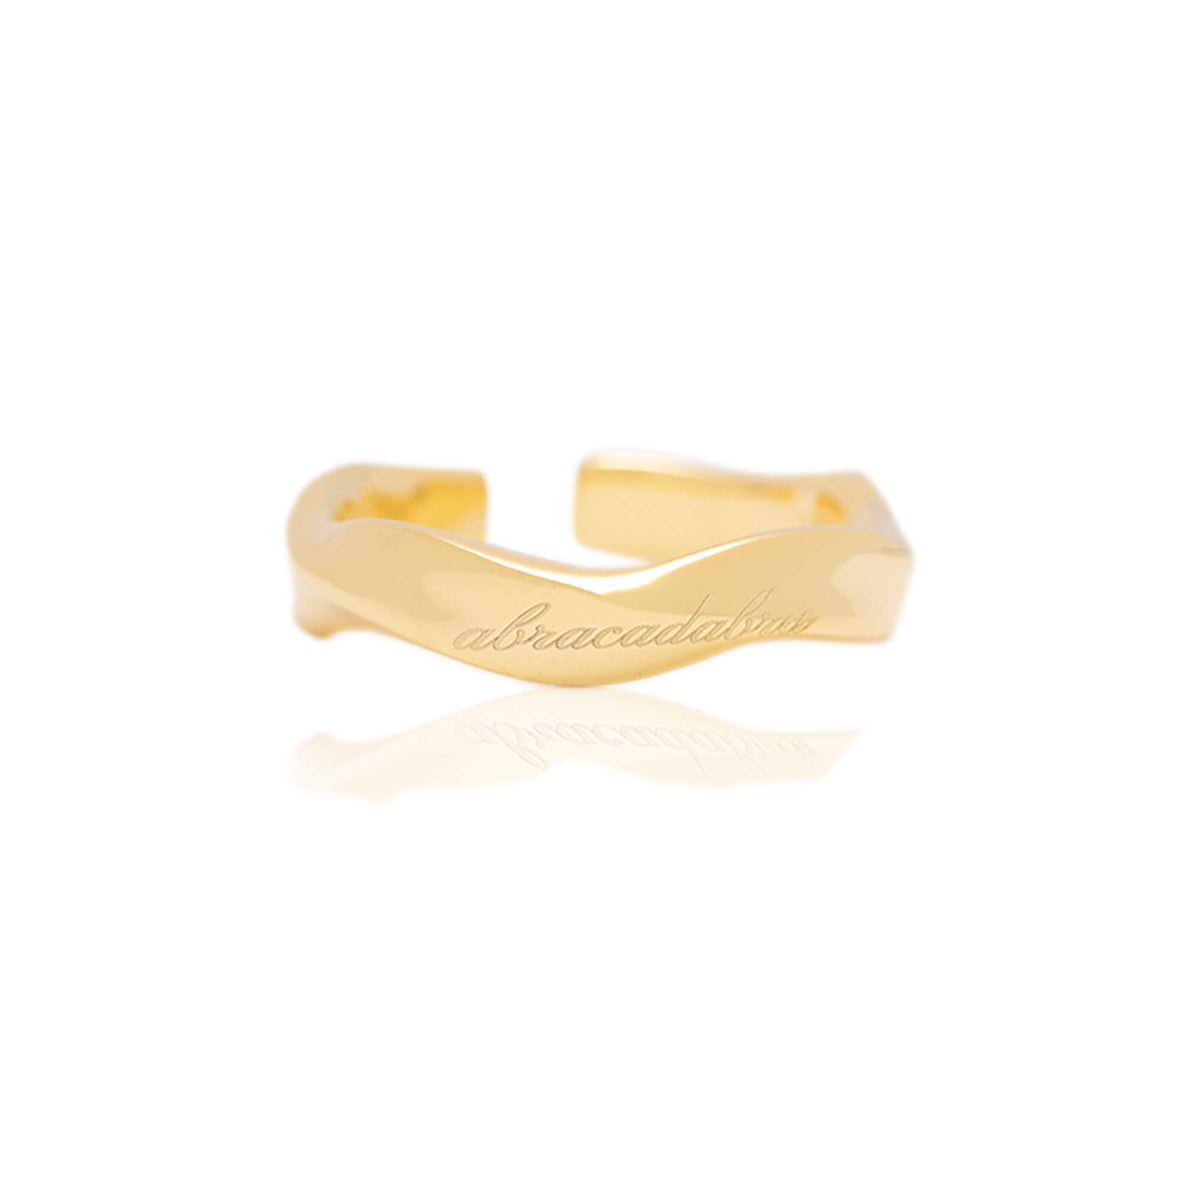 Sale - Abracadabra Ring